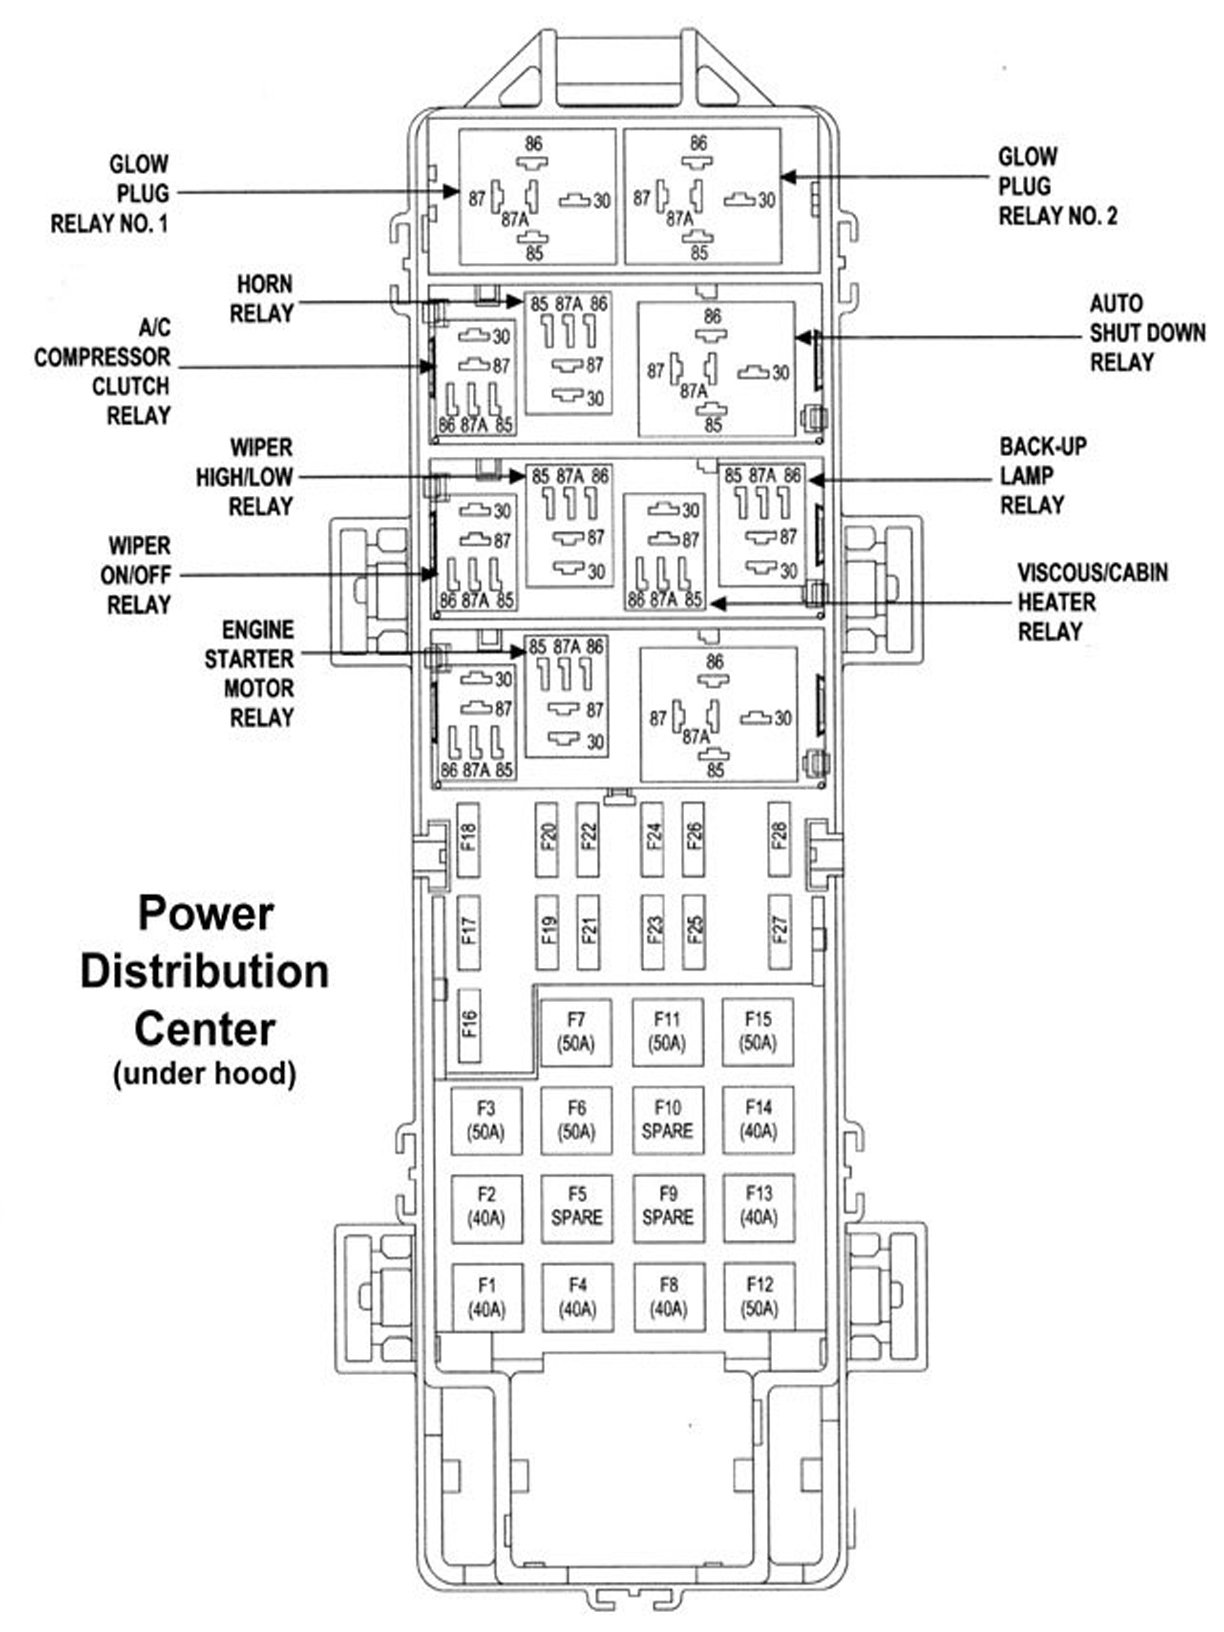 Jeep Grand Cherokee 1999 2004 Fuse Box Diagram 397760 on 1996 jeep wrangler fuse box diagram